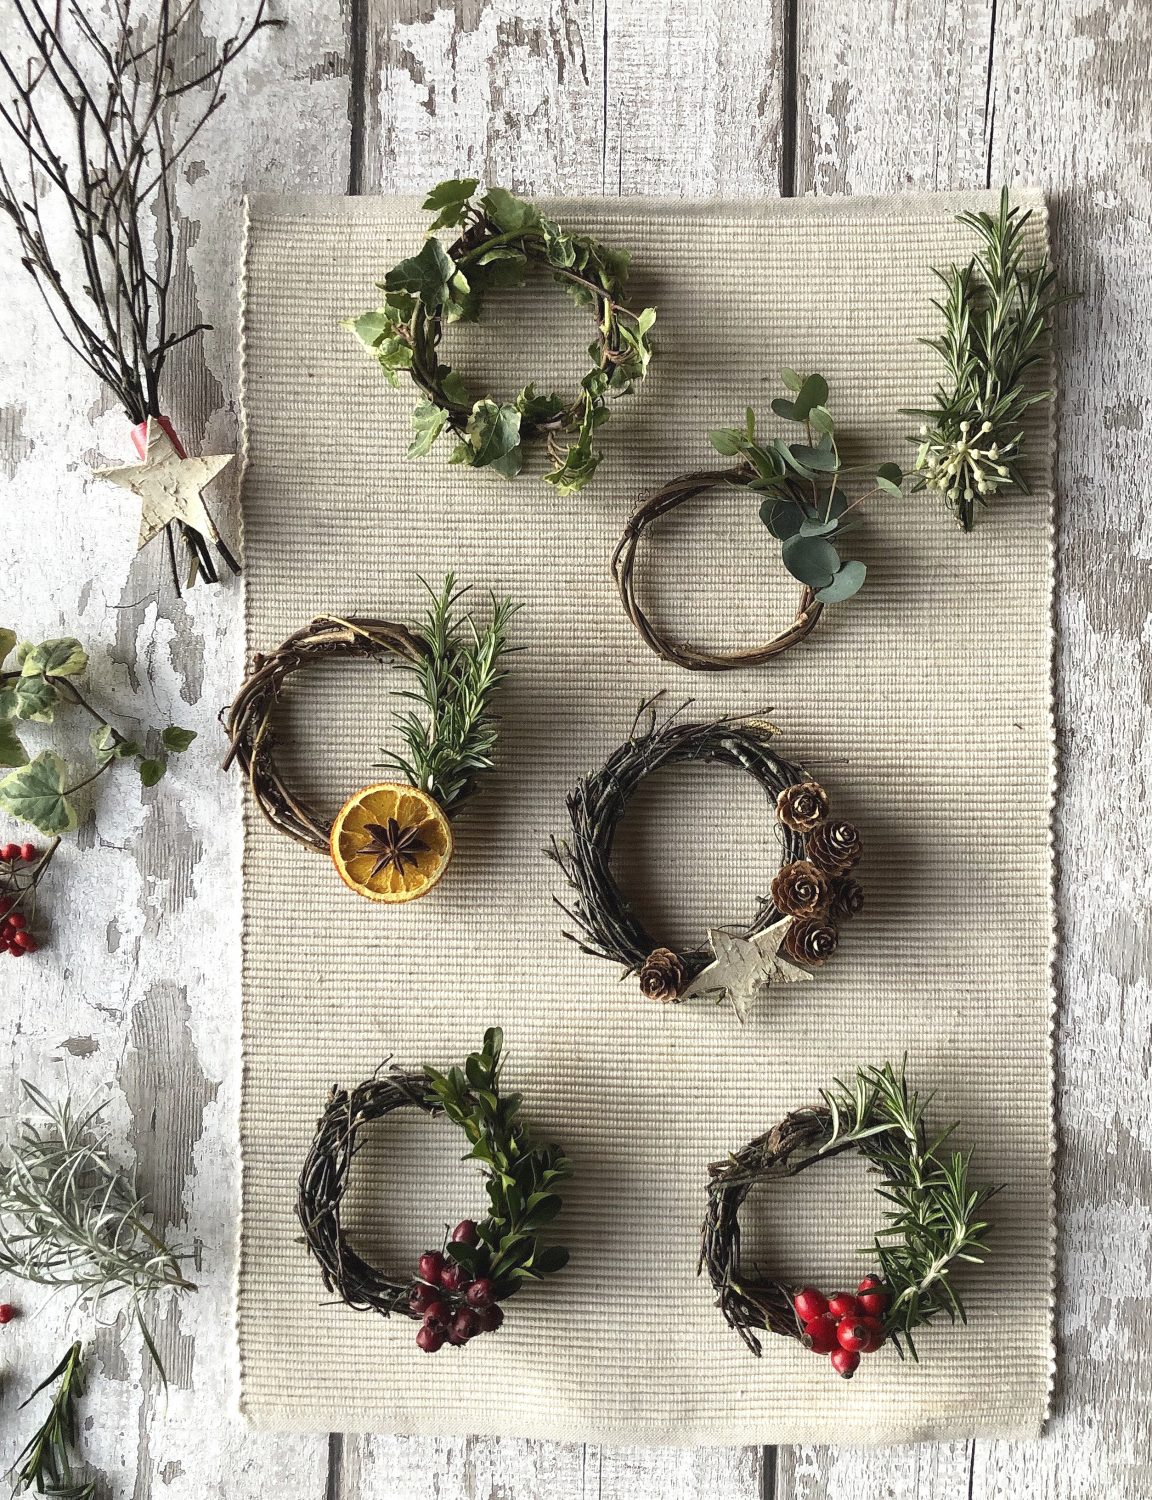 Foraged decorations